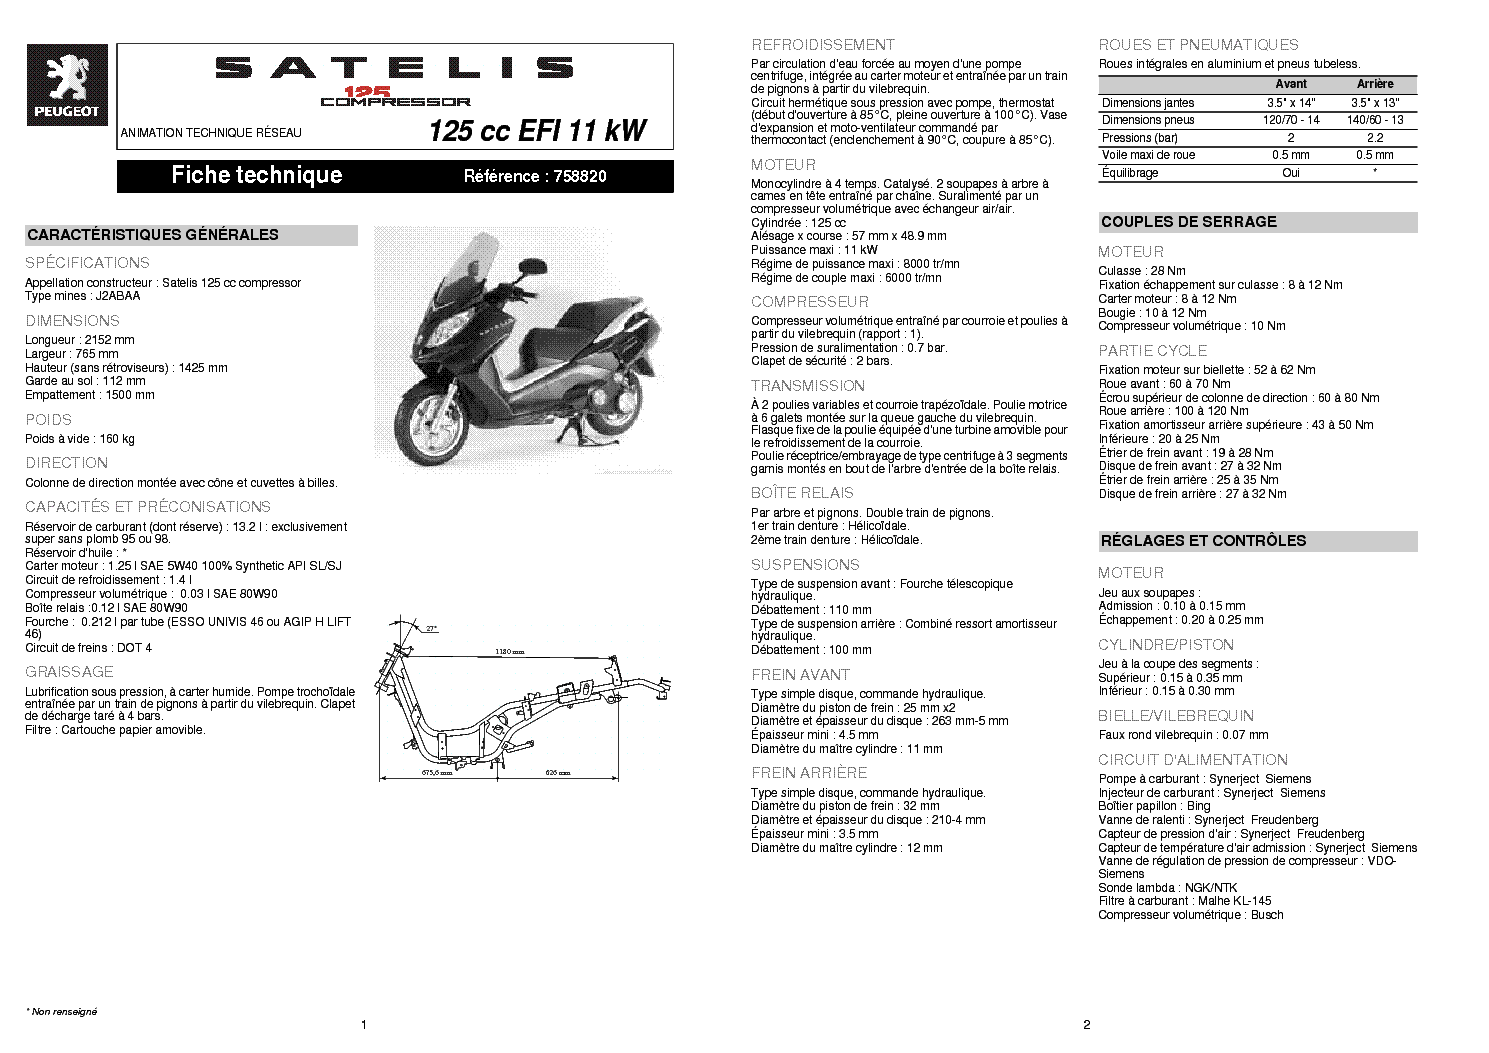 peugeot 307 cc service manual pdf free download